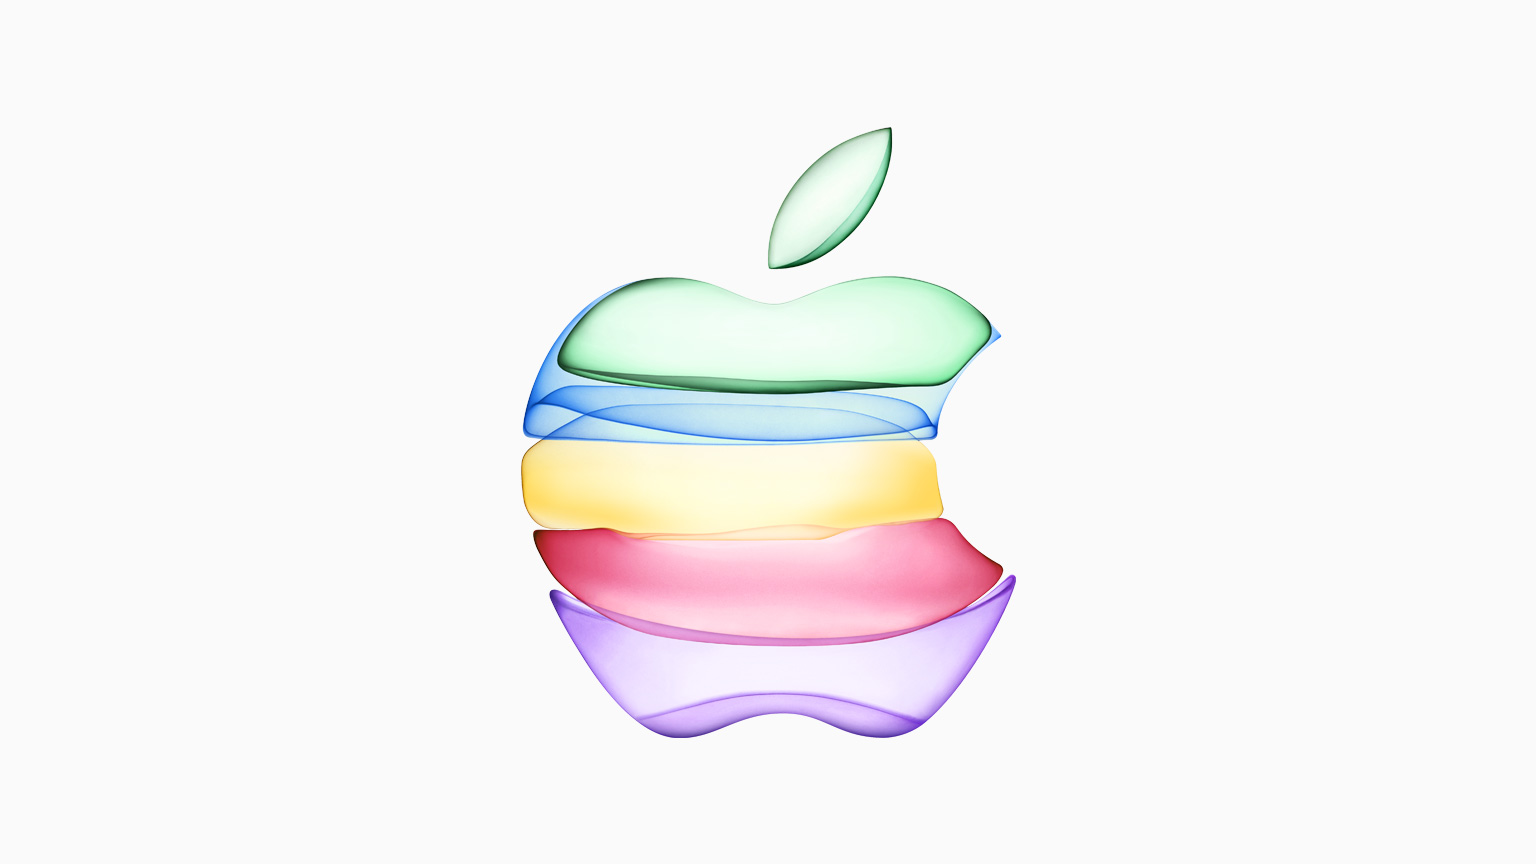 Apple Event Promotional Image